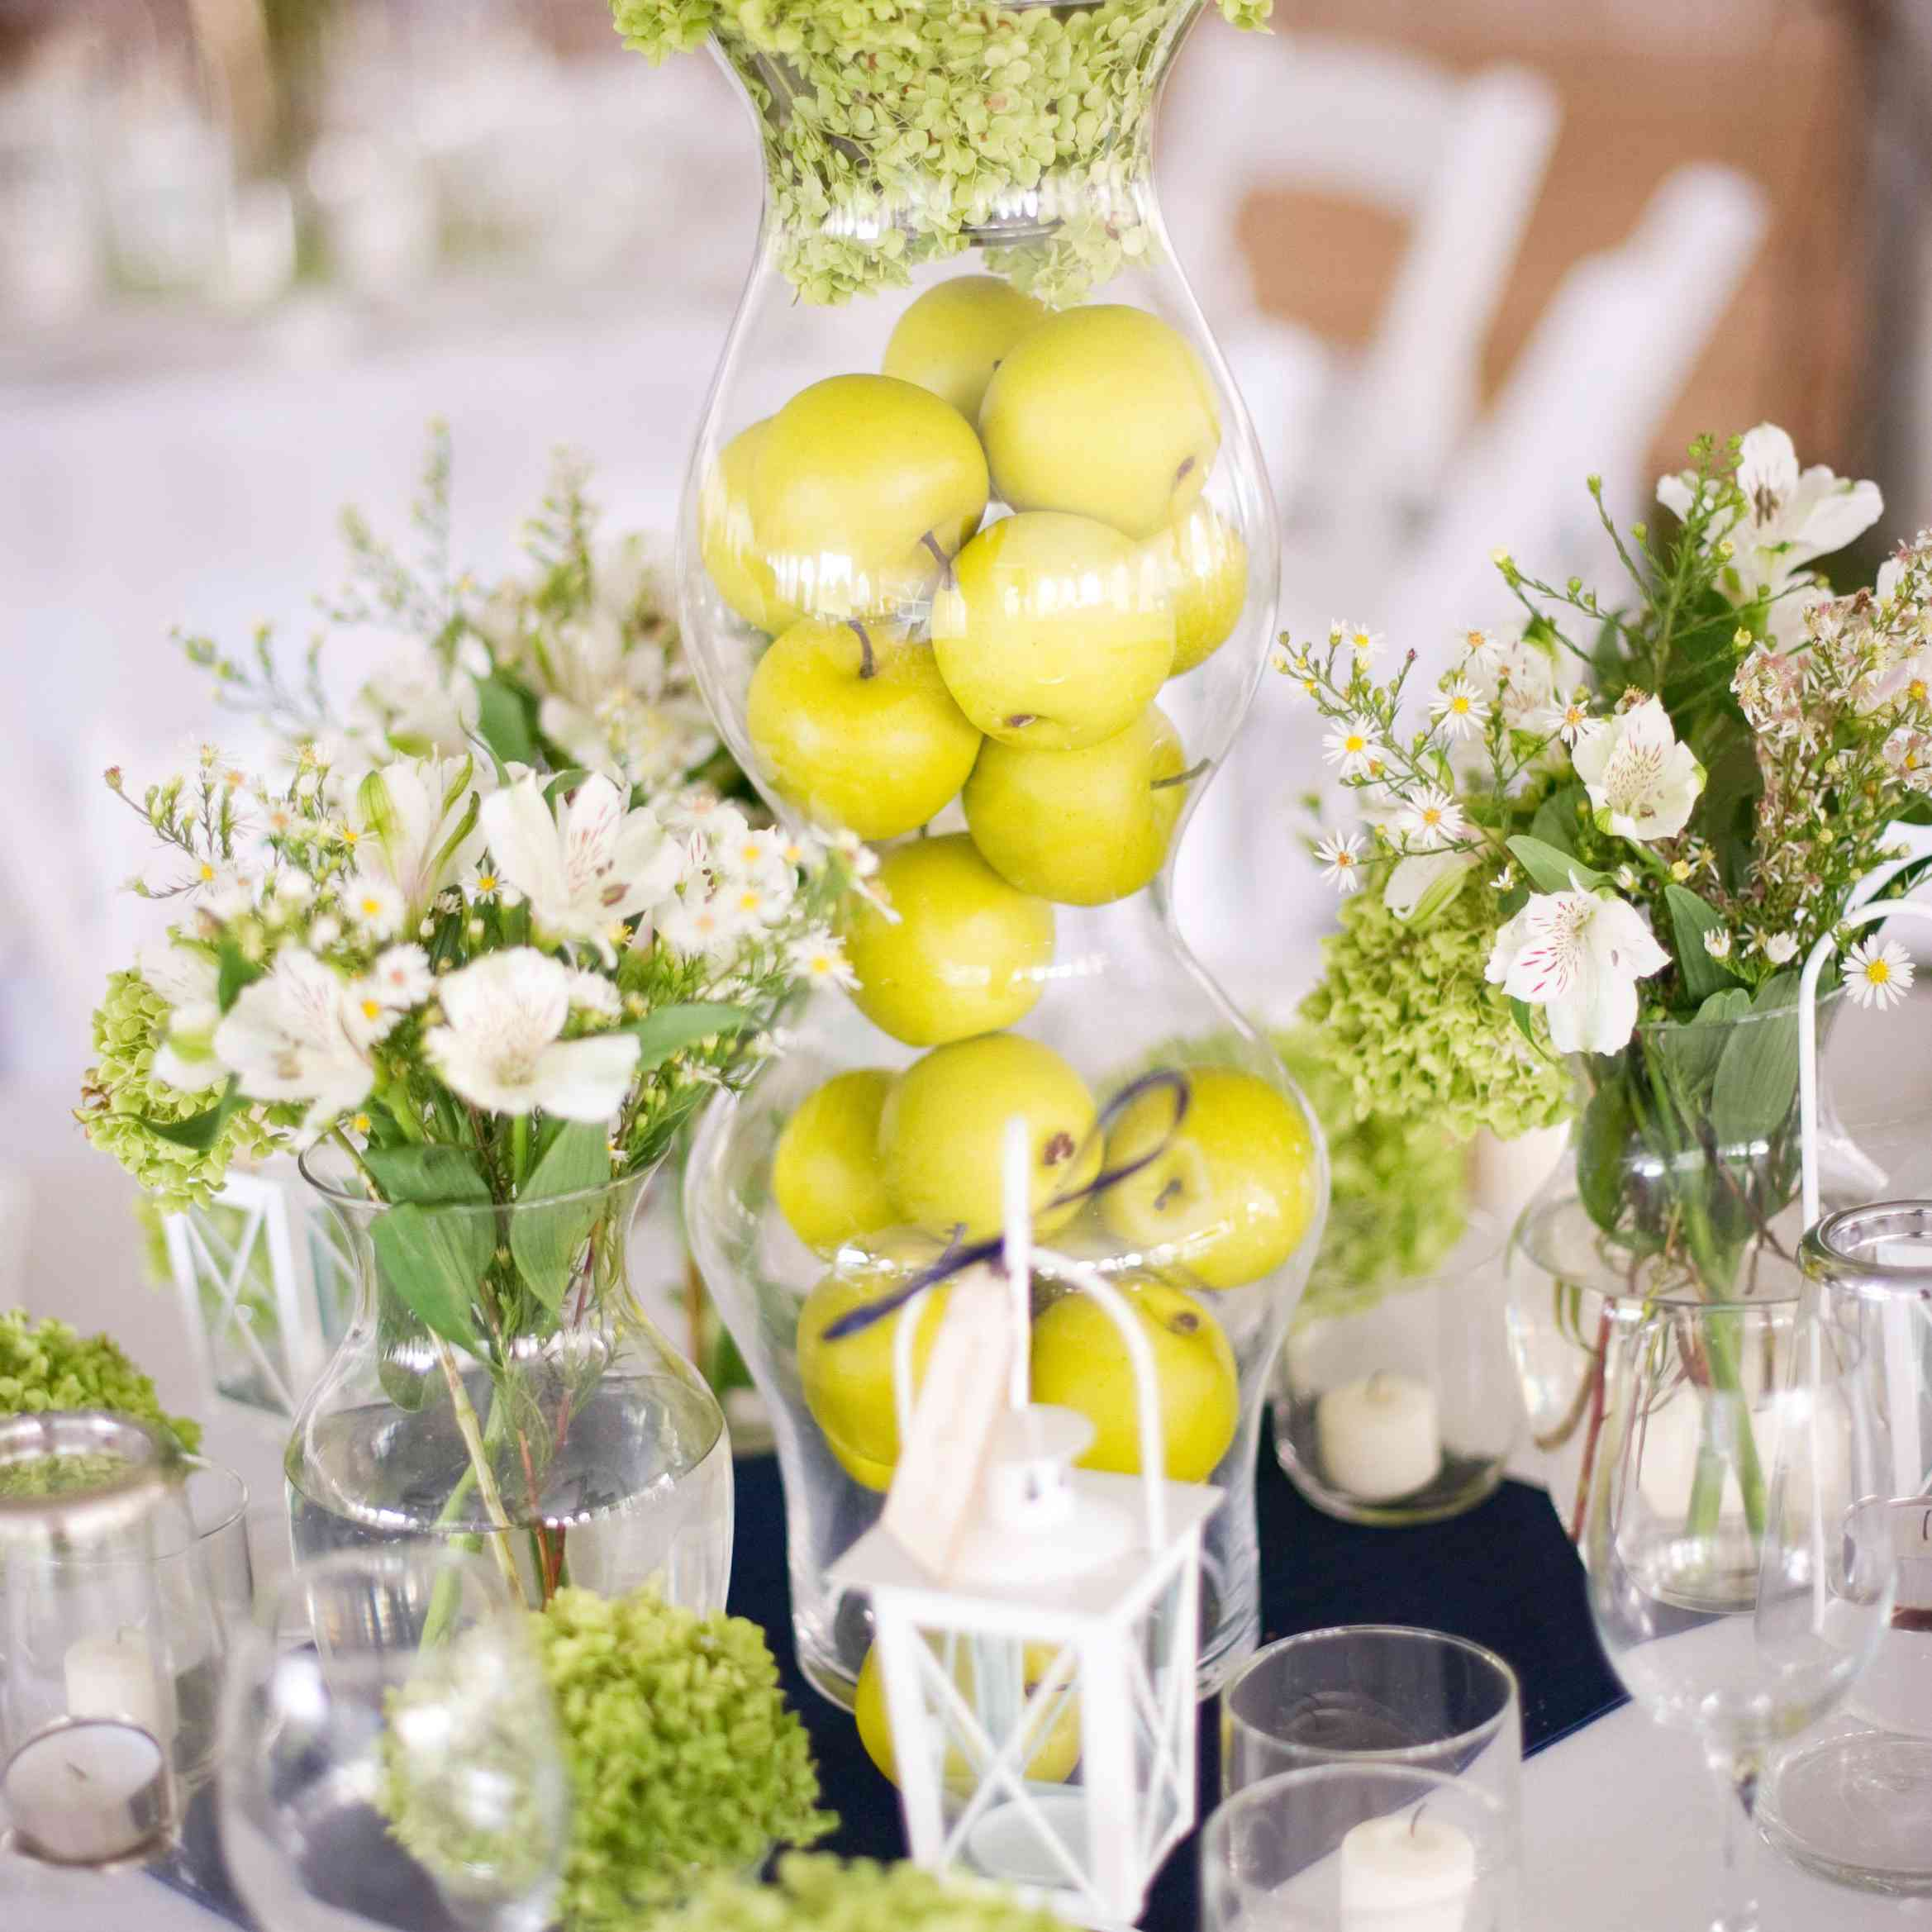 Granny smith apples used as a centerpiece